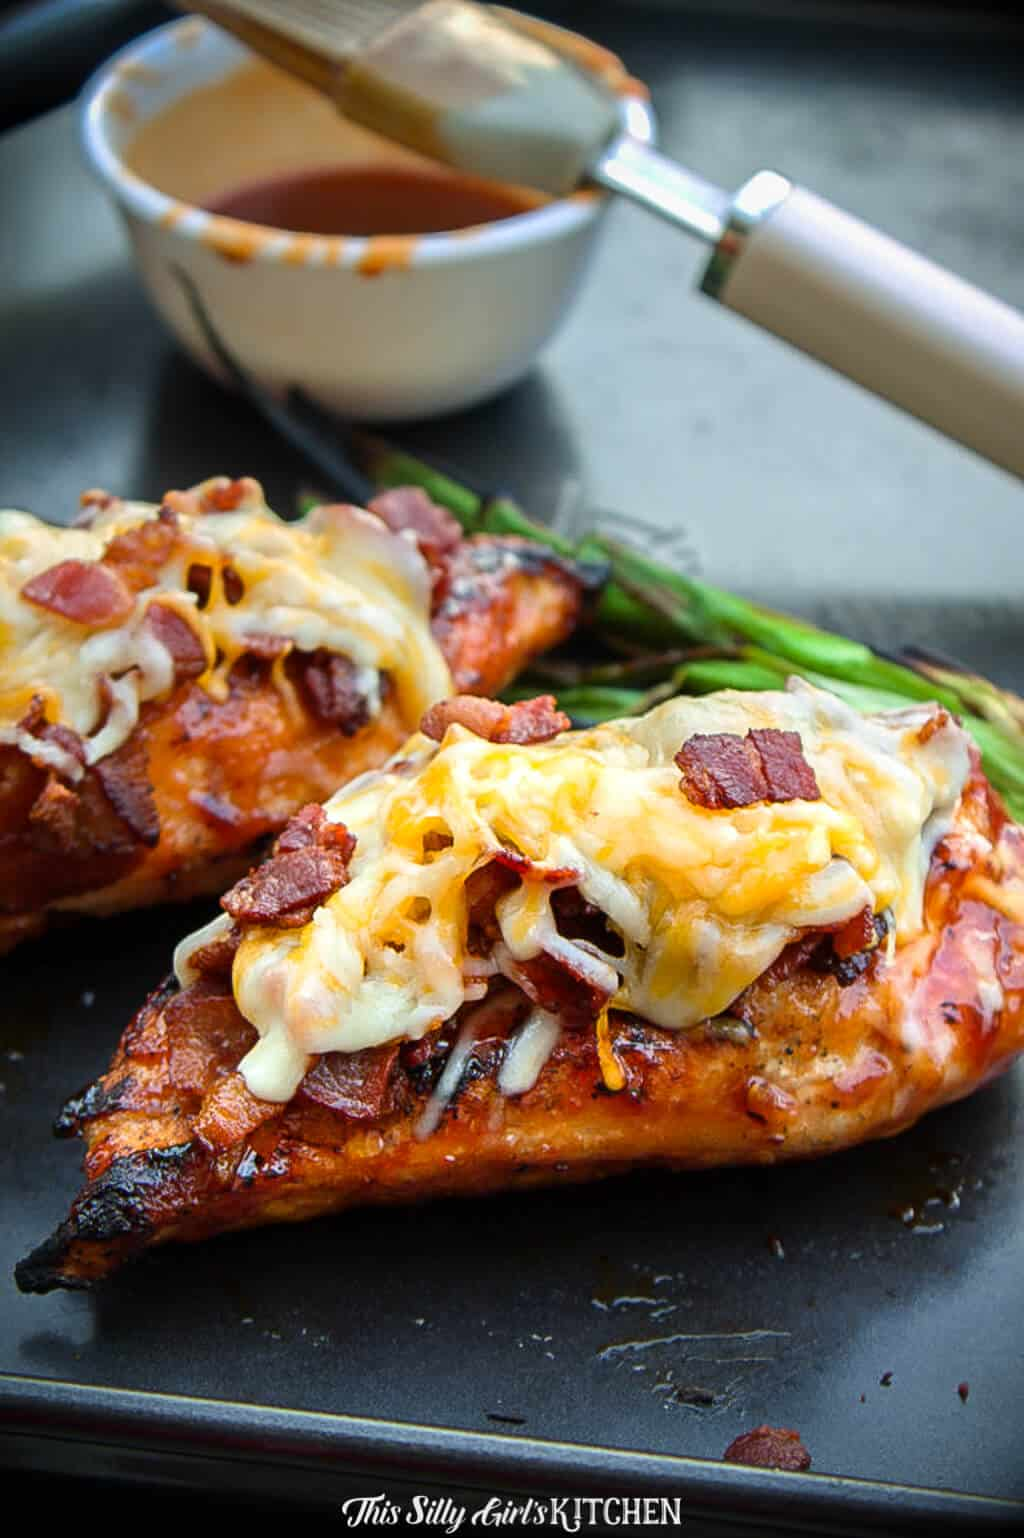 Monterey chicken, an easy grilled bbq chicken topped with BACON and melty cheese. #recipe from ThisSillyGirlsKitchen.com #montereychicken #grilledchicken #bbqchicken #chicken